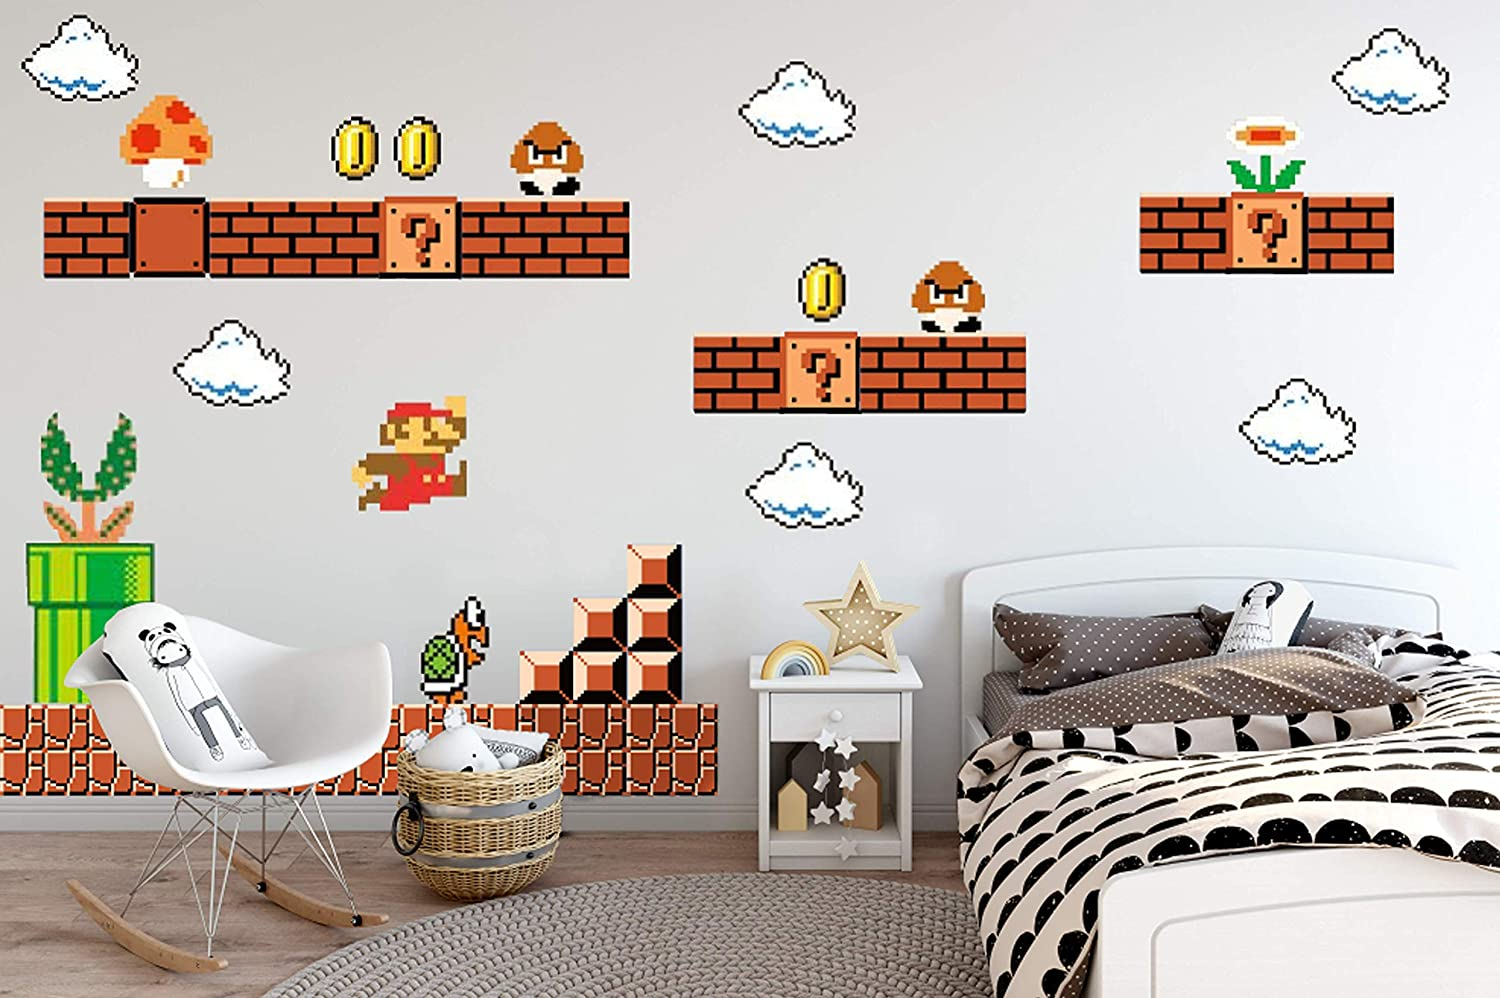 Nintendo Wall Graphics - Super Mario Bros